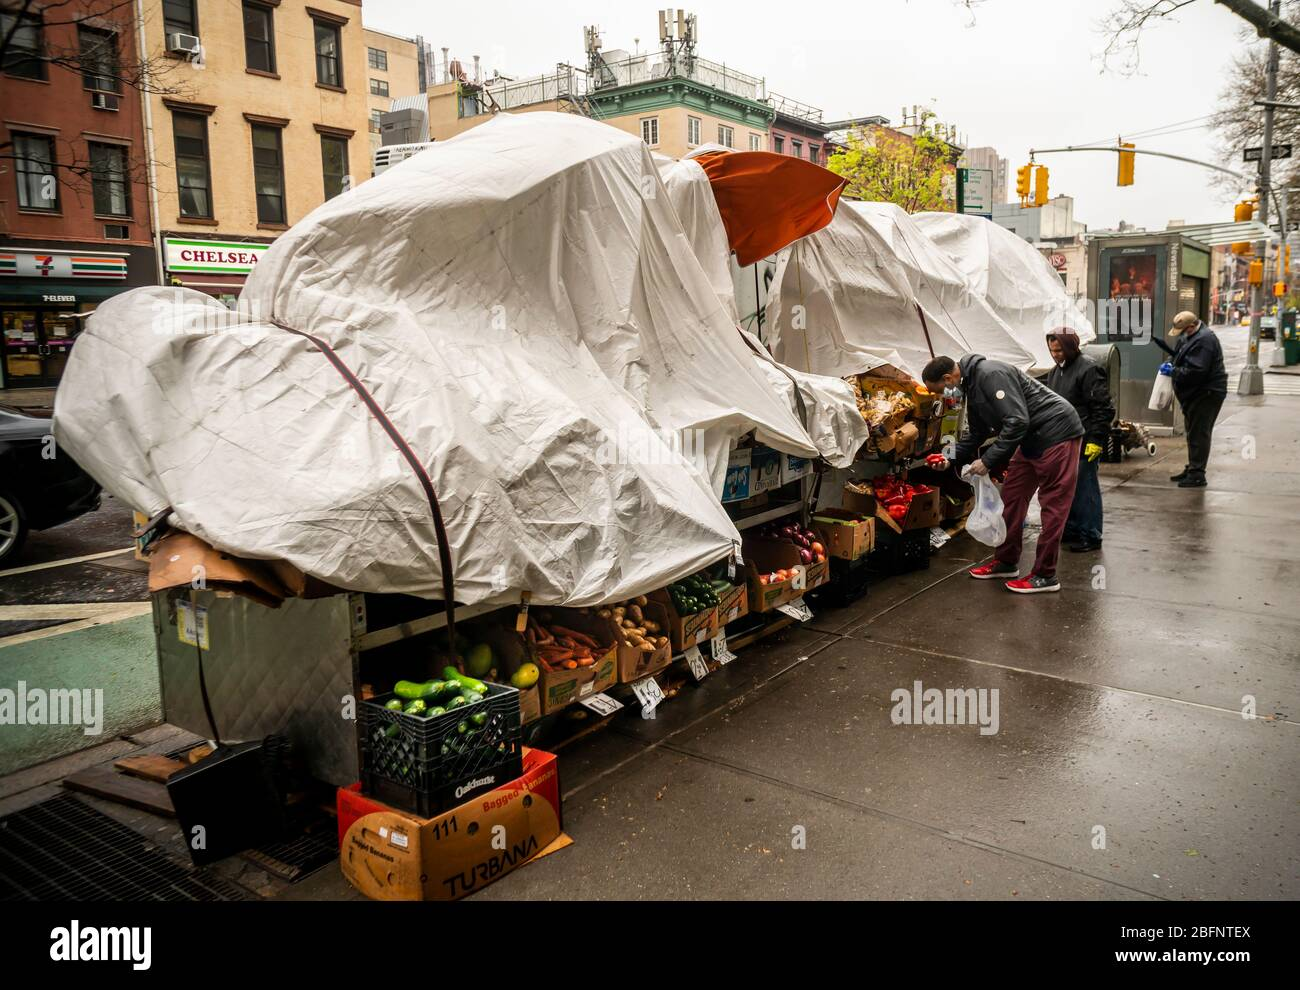 A fruit stand in the Chelsea neighborhood of New York on Monday, April 13, 2020 prepares for the windy weather. Winds in the afternoon are expected to gust from 60-70 mph. (© Richard B. Levine) Stock Photo